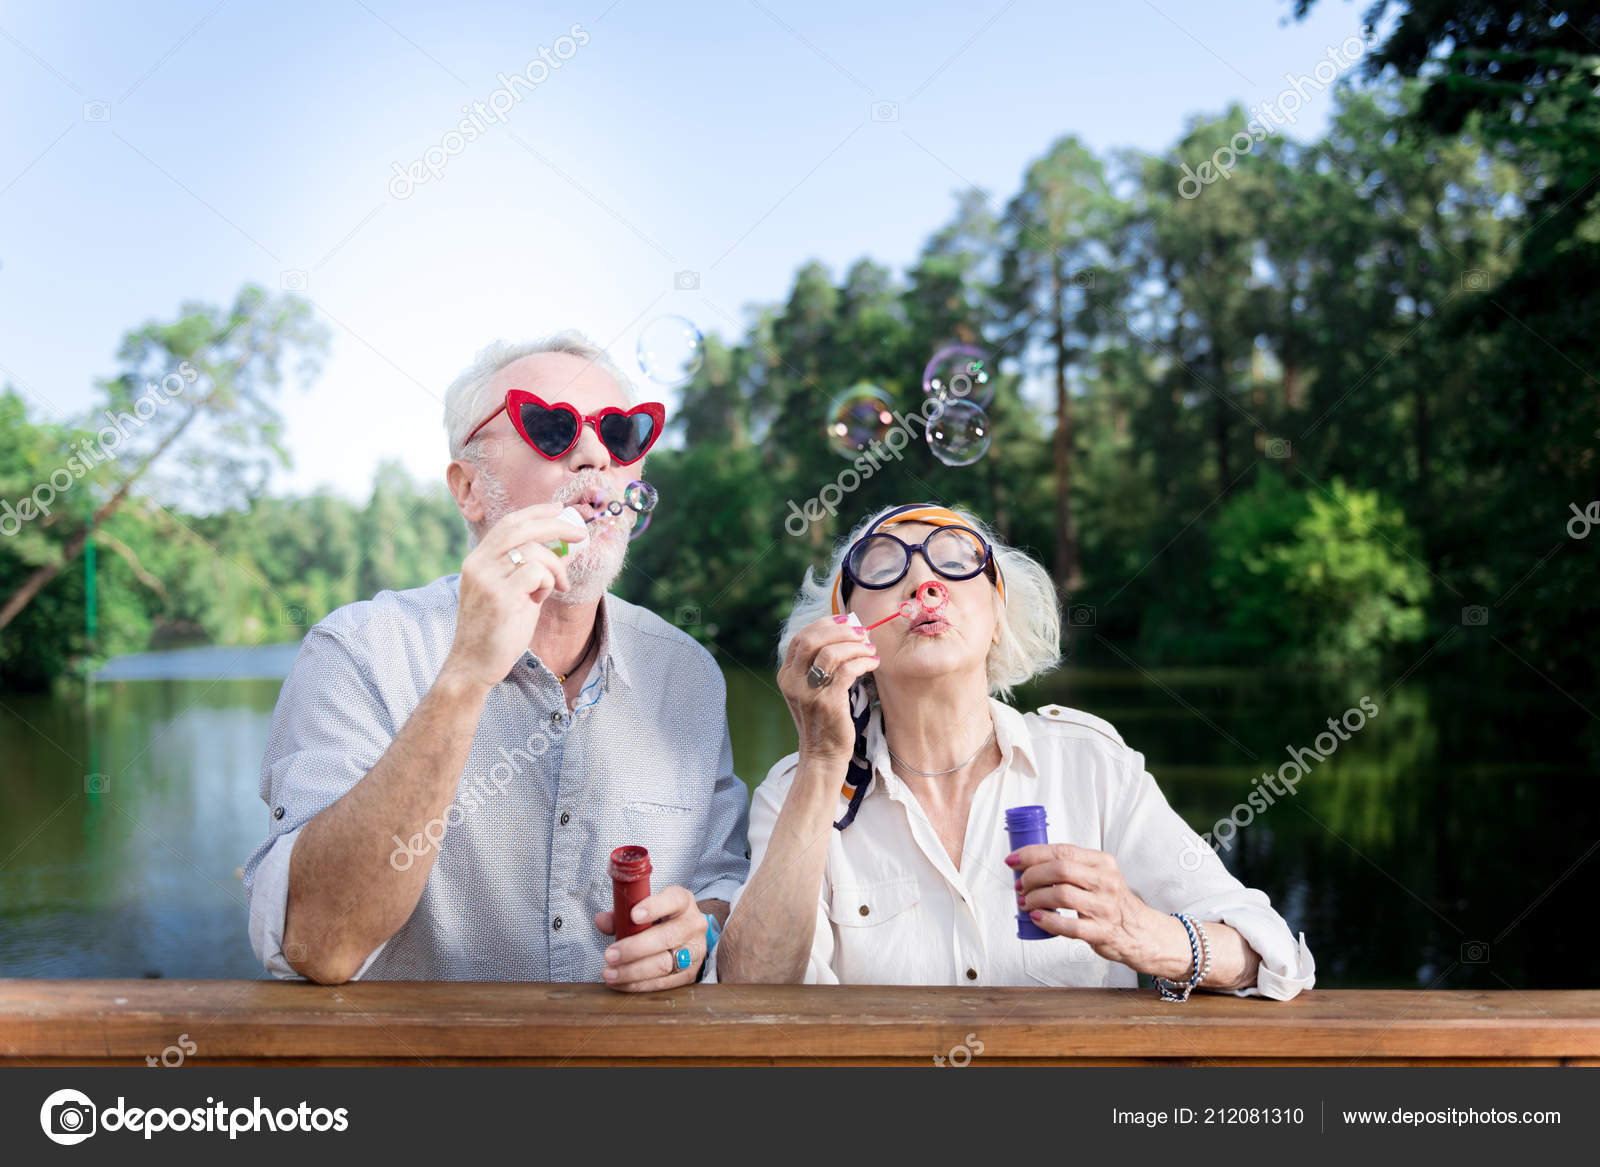 9ecd7f6f29d Red sunglasses. Funny elderly man wearing red heart shape sunglasses using  soap bubbles standing near his wife — Photo by ...